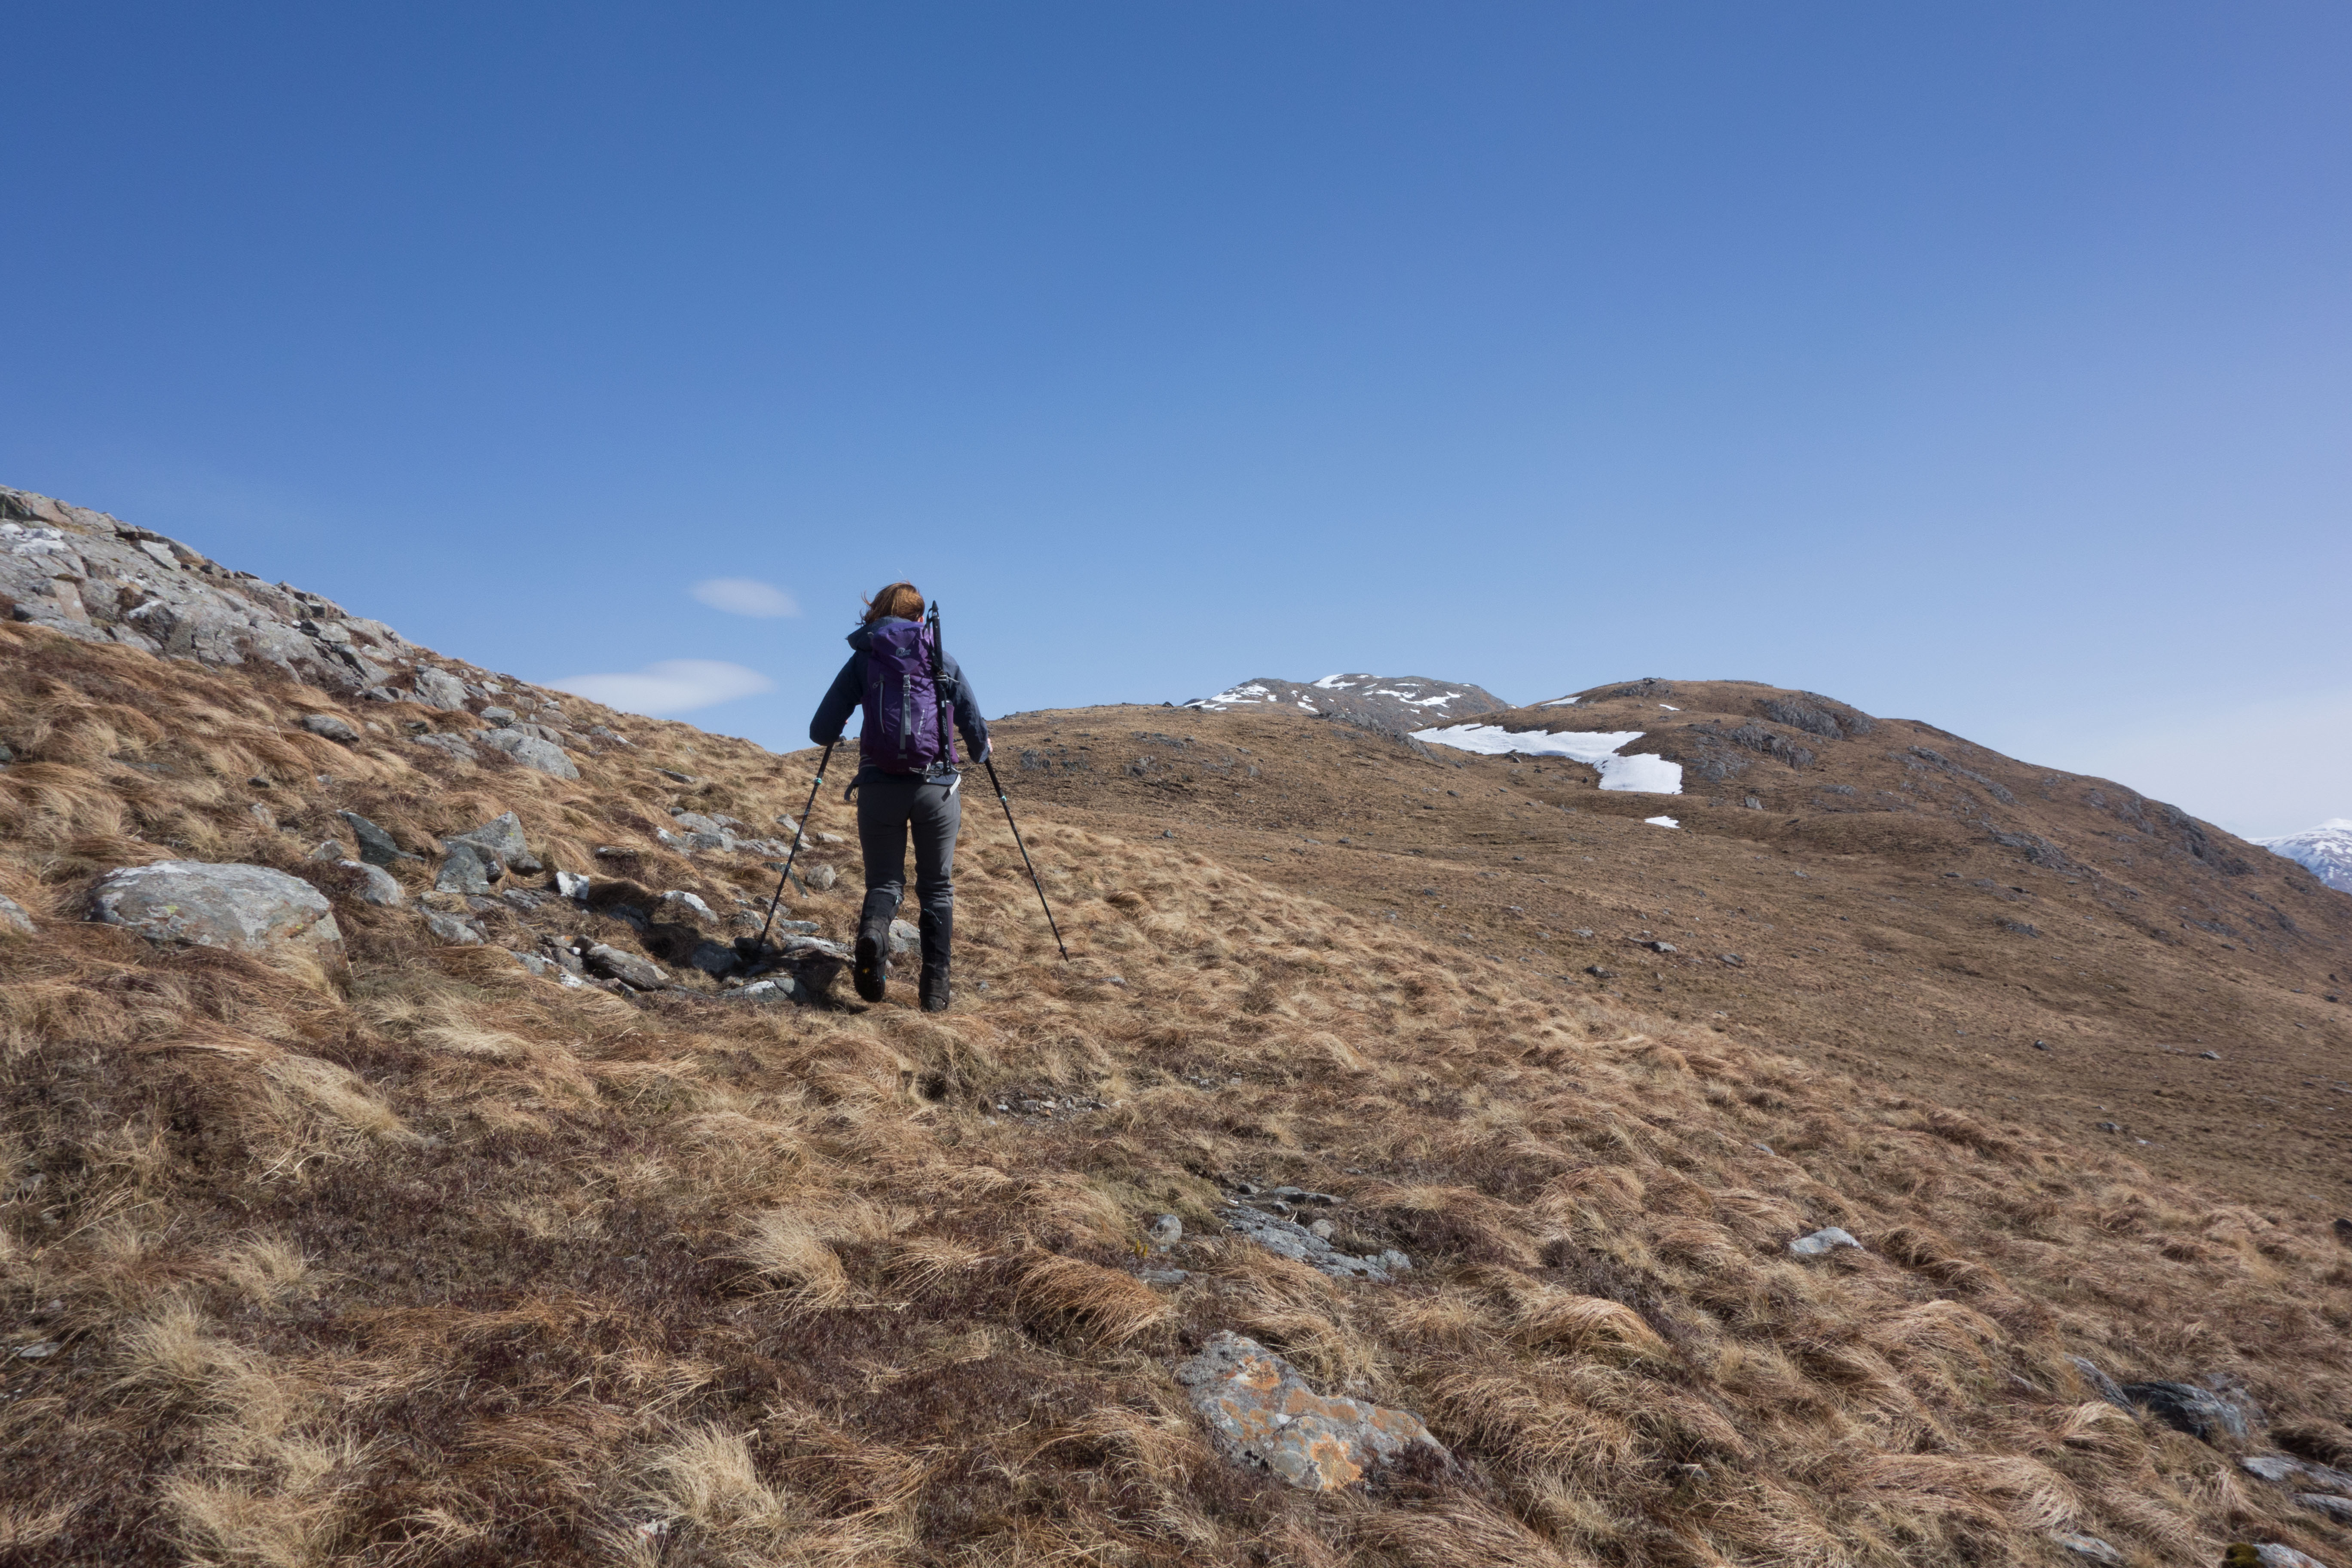 Heading up to Beinn Fhionnlaidh, decent paths for a munro